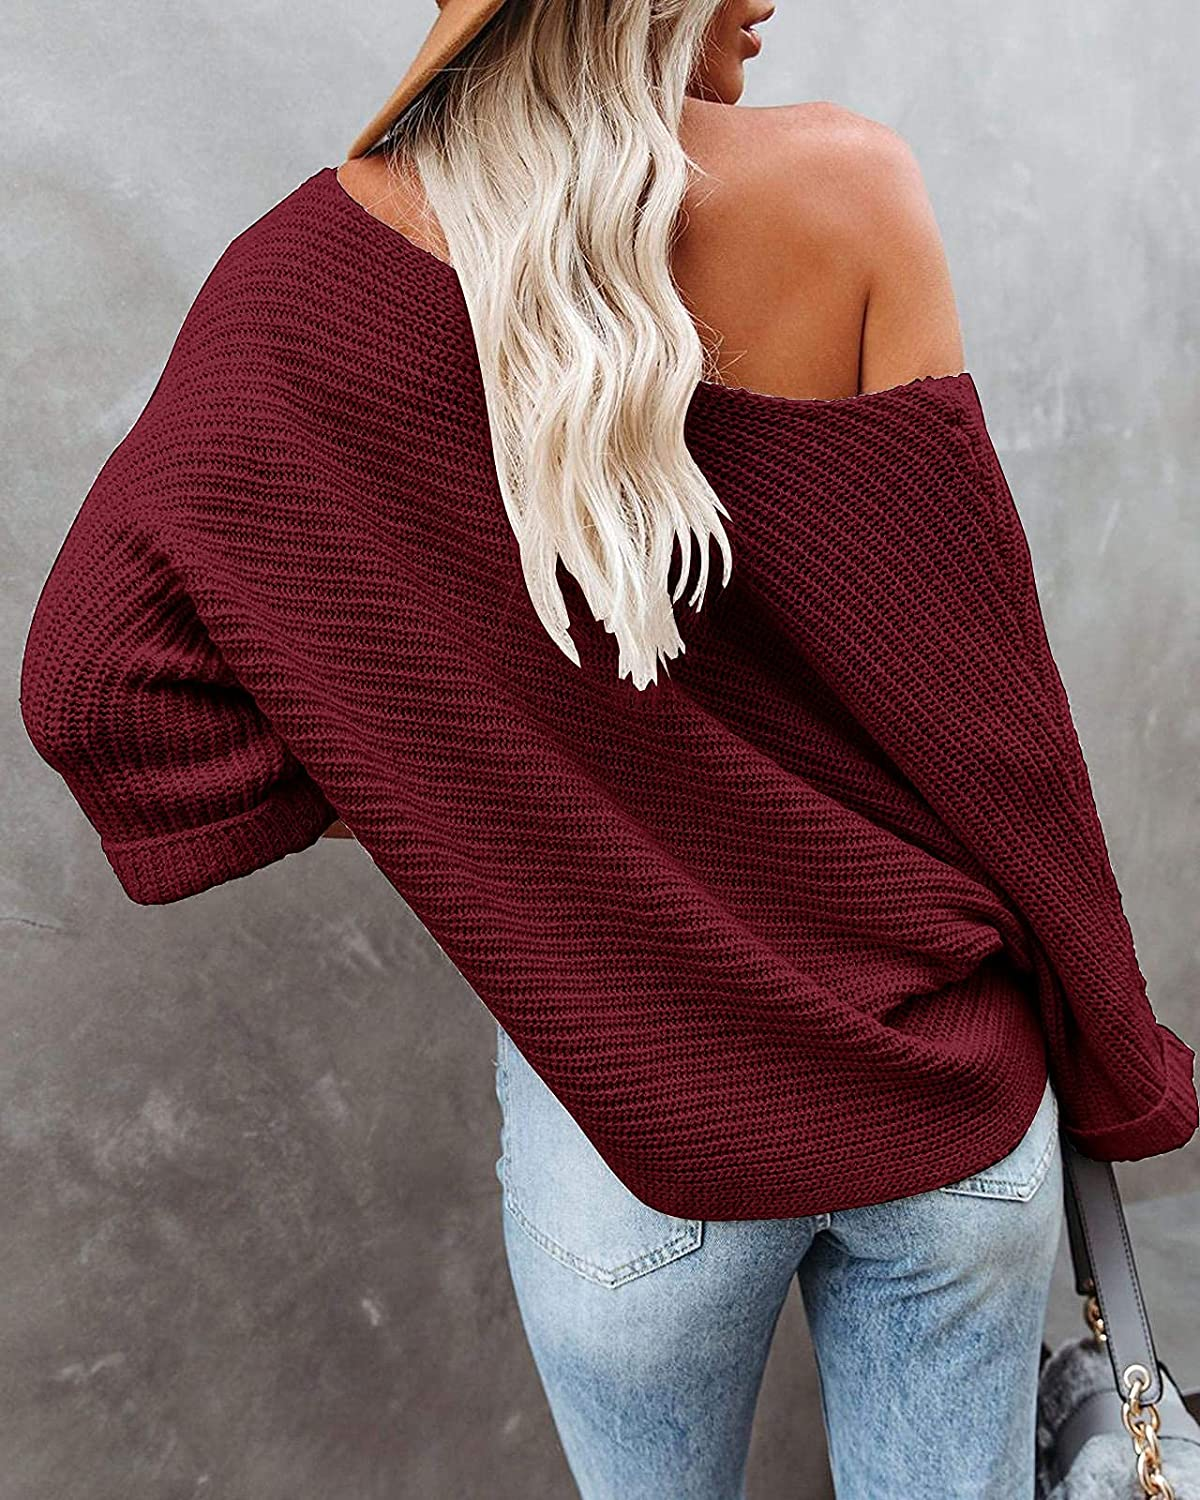 KIRUNDO Women's Off Shoulder Sweaters Batwing 3/4 Sleeves Casual Loose Fit Solid Pullovers Knit Jumper